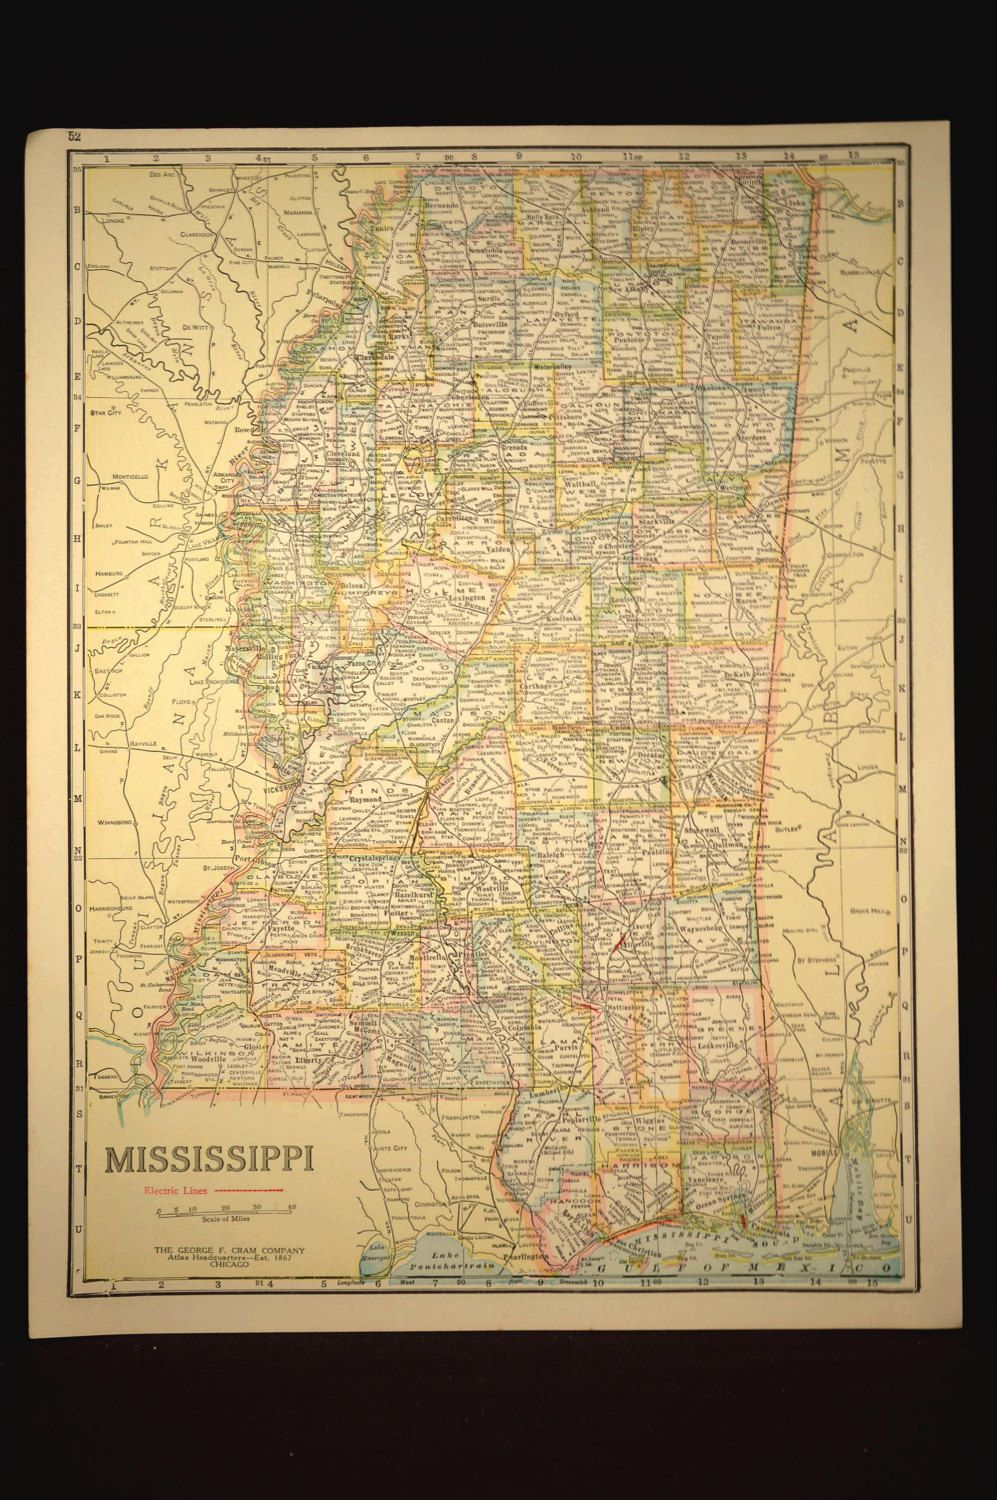 TWO SIDED Antique Road Map Mississippi Map Original Highway Roadway ...